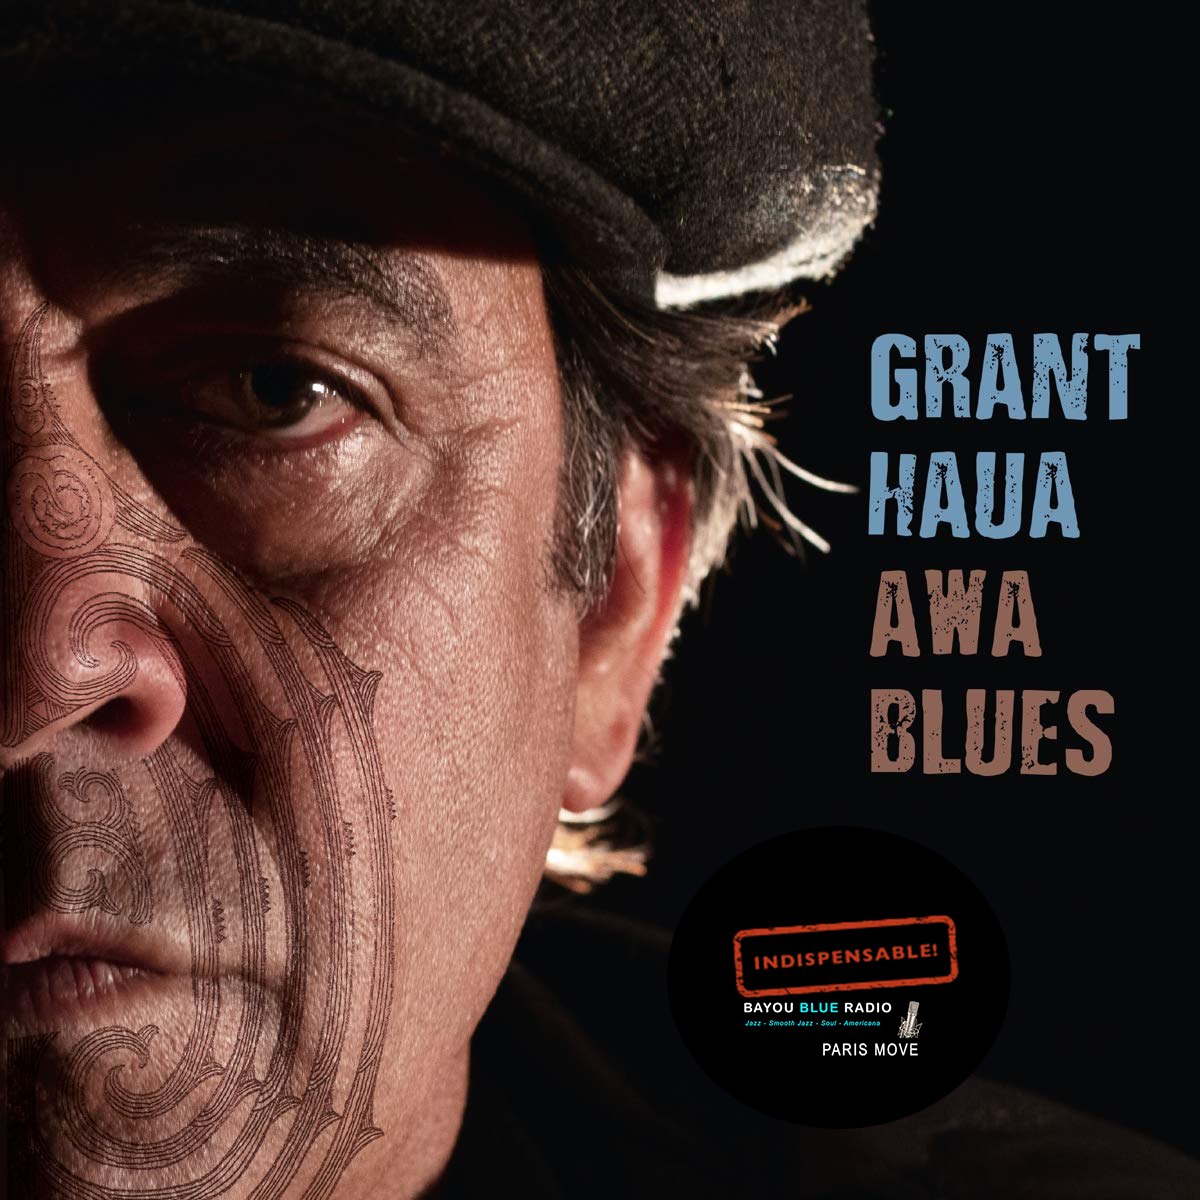 Grant Haua – Awa Blues